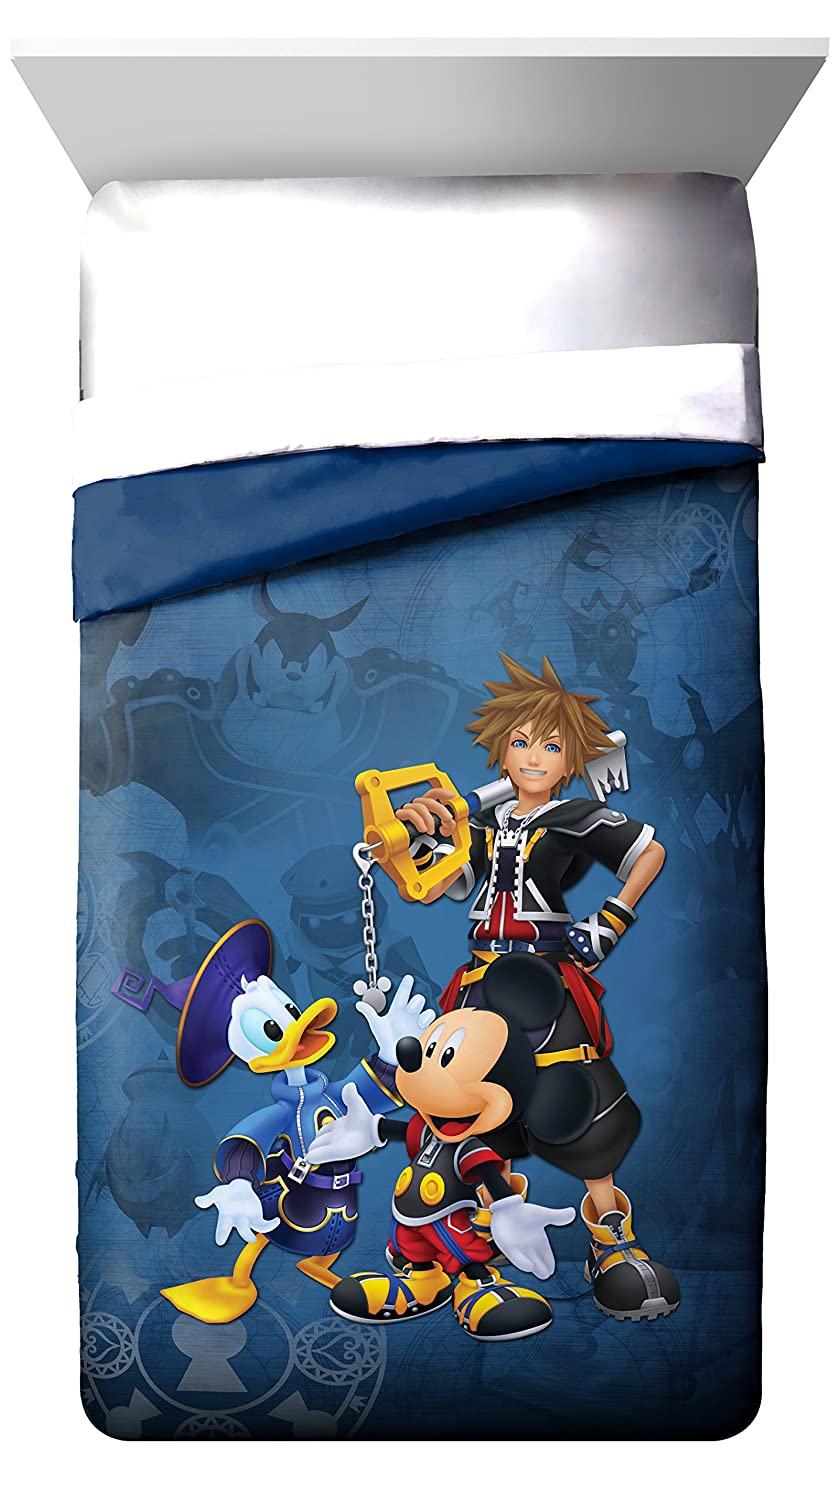 Disney Kingdom Hearts Metal Blue Twin Reversible Comforter with Mickey Mouse, Donald Duck & Sora